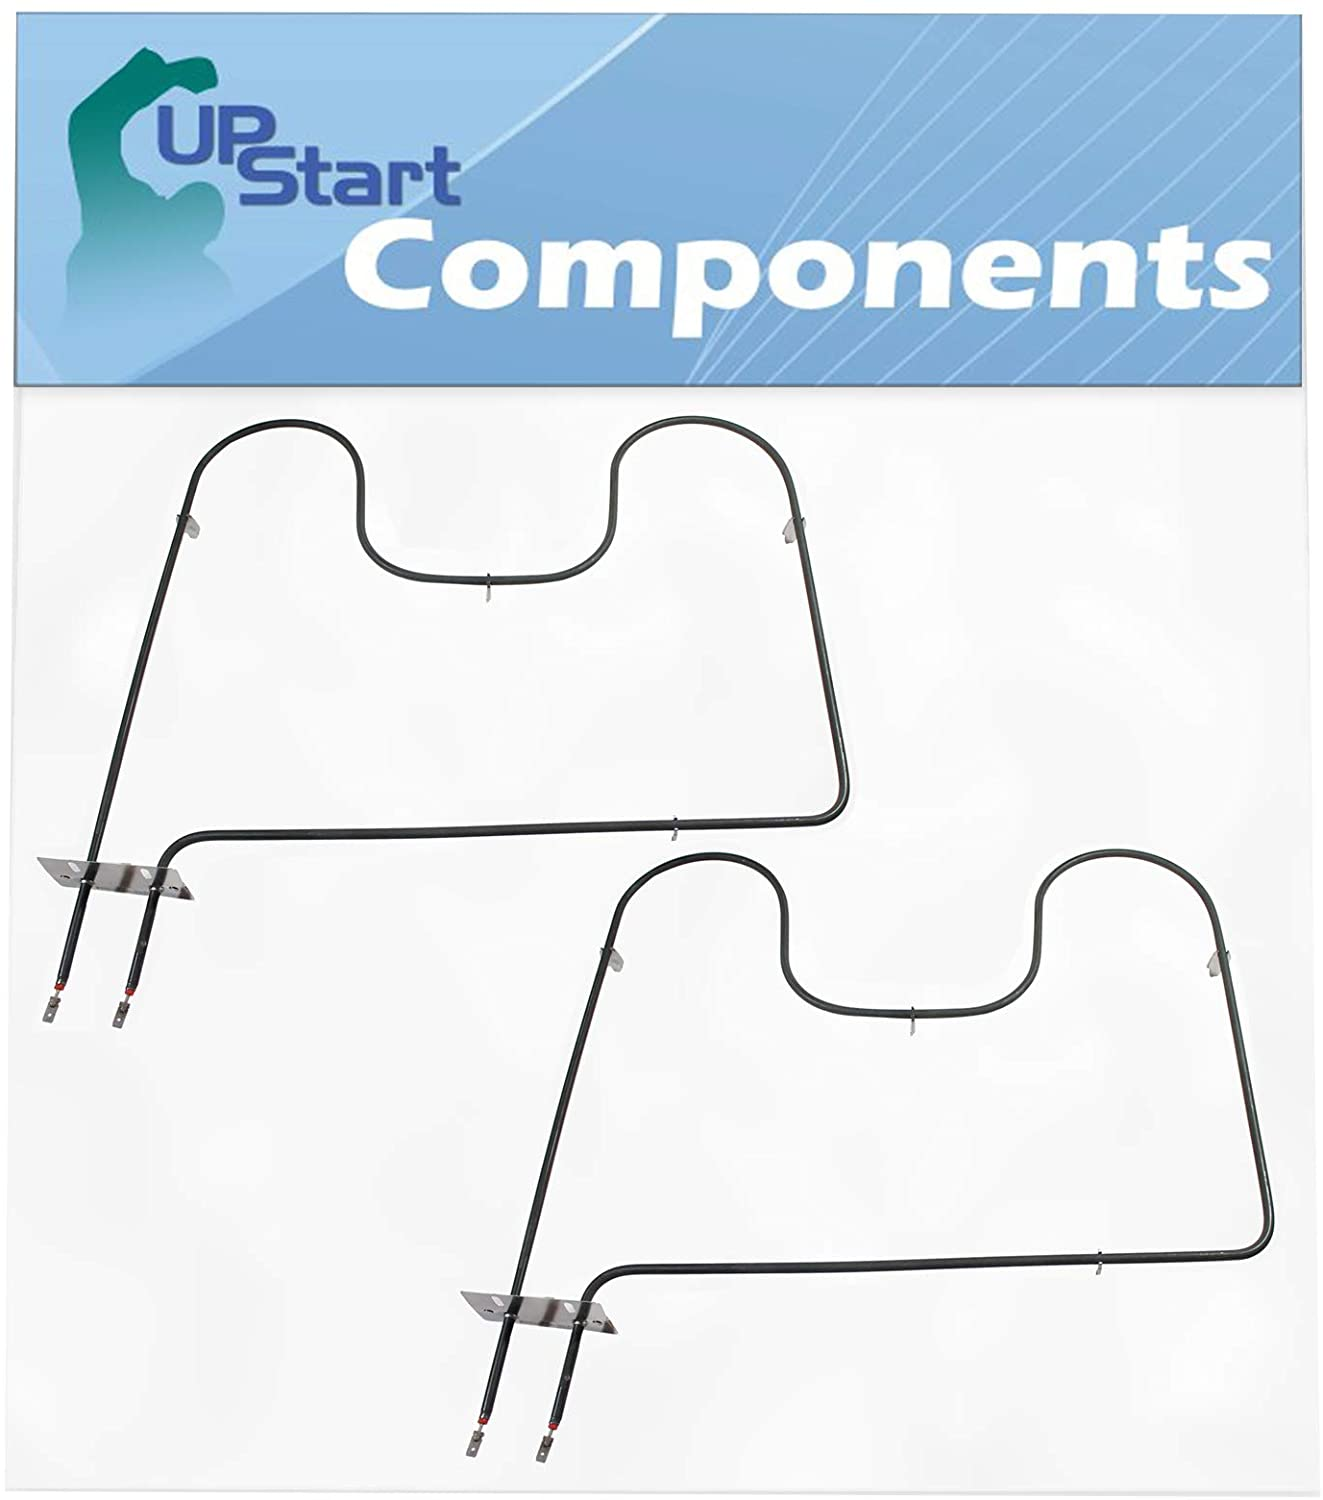 2-Pack 7406P428-60 Oven Heating Element Replacement for Maytag MER6772BCB - Compatible with WP7406P428-60 Bake Element